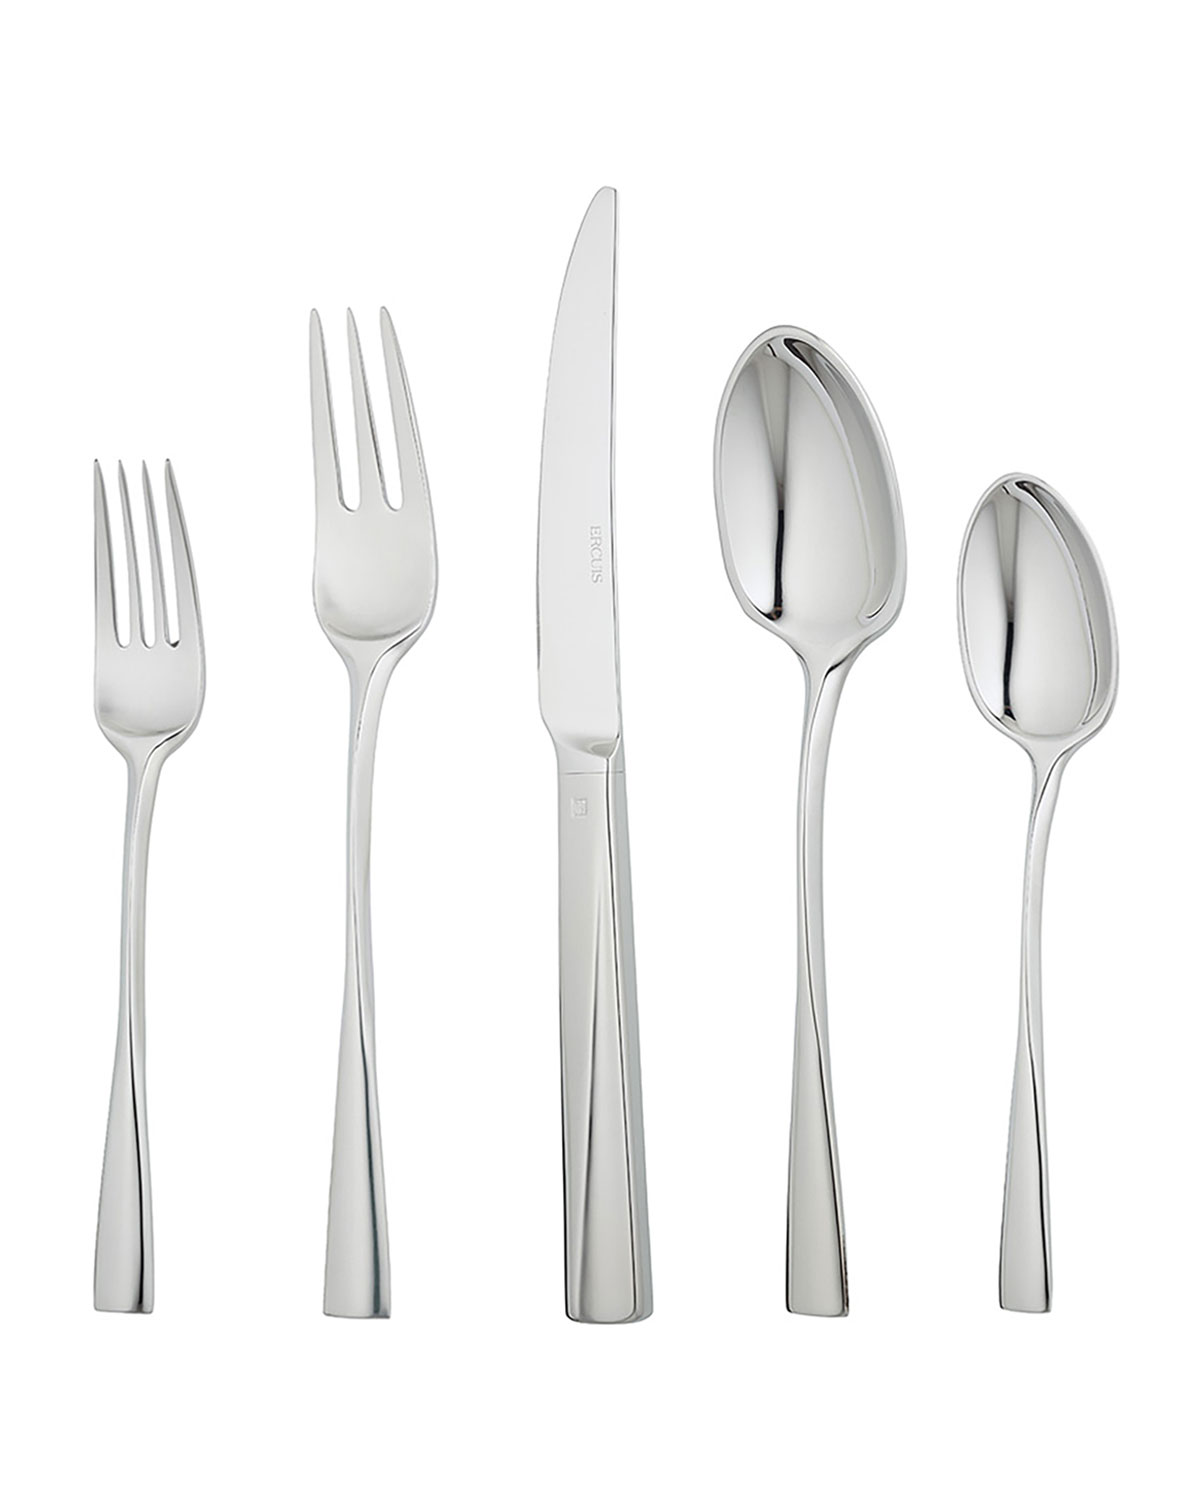 Ercuis CHORUS 5-PIECE FLATWARE PLACE SETTING